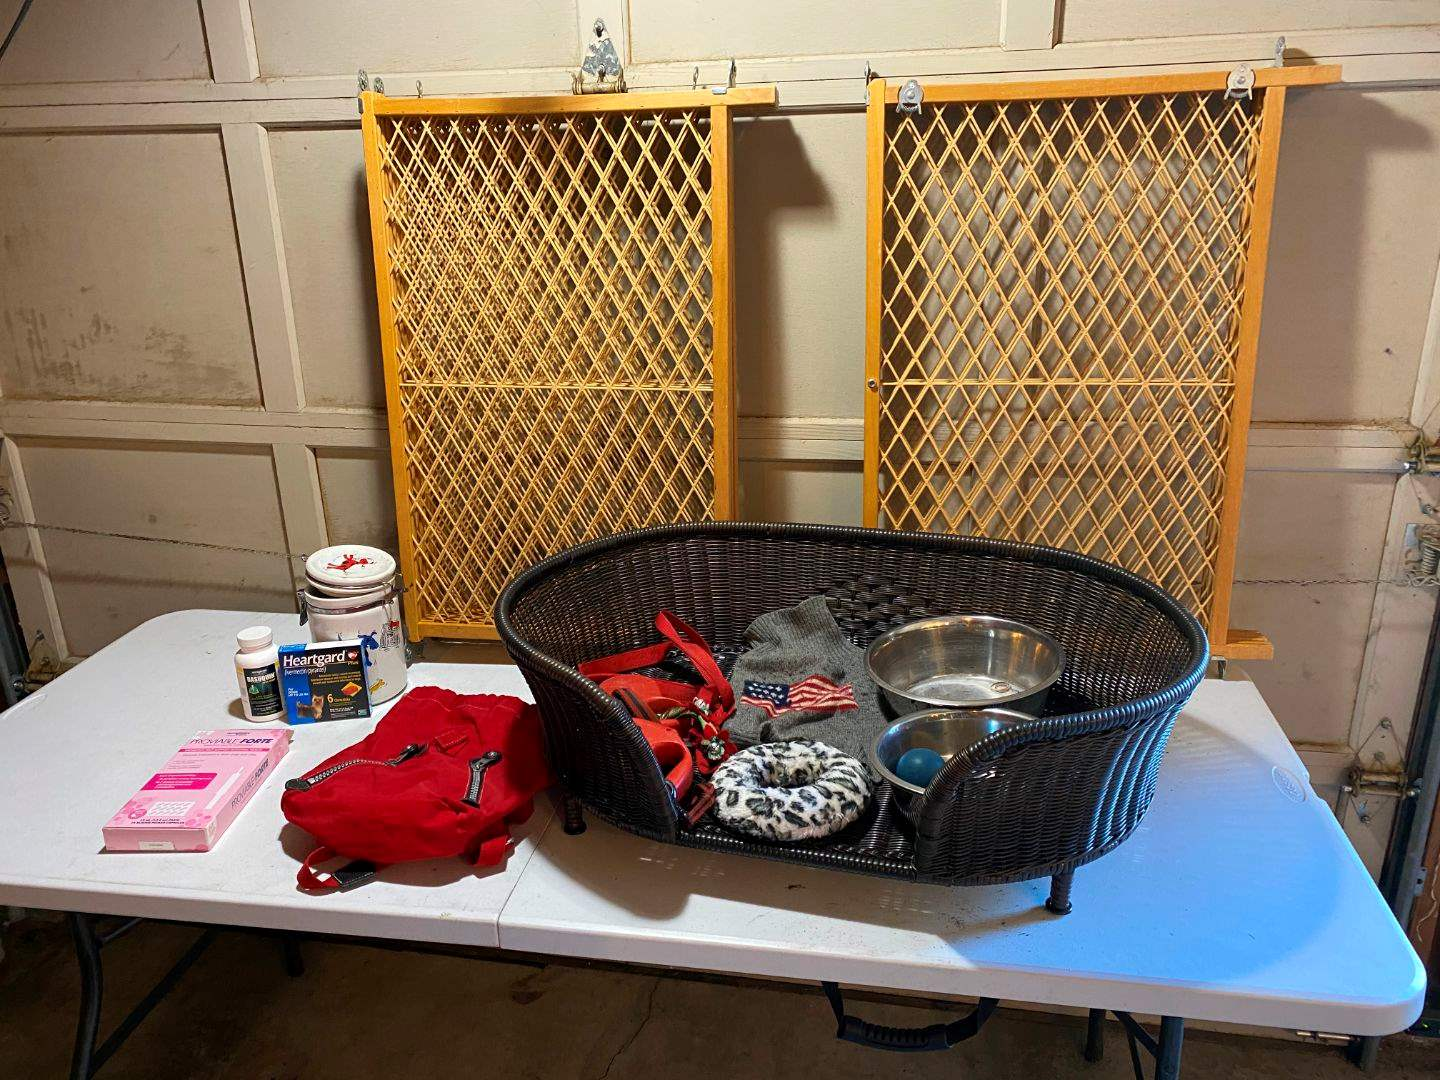 Lot # 223 - Dog Lot: Wicker Dog Bed, Baby Gates, Leashes, Food Dishes (main image)